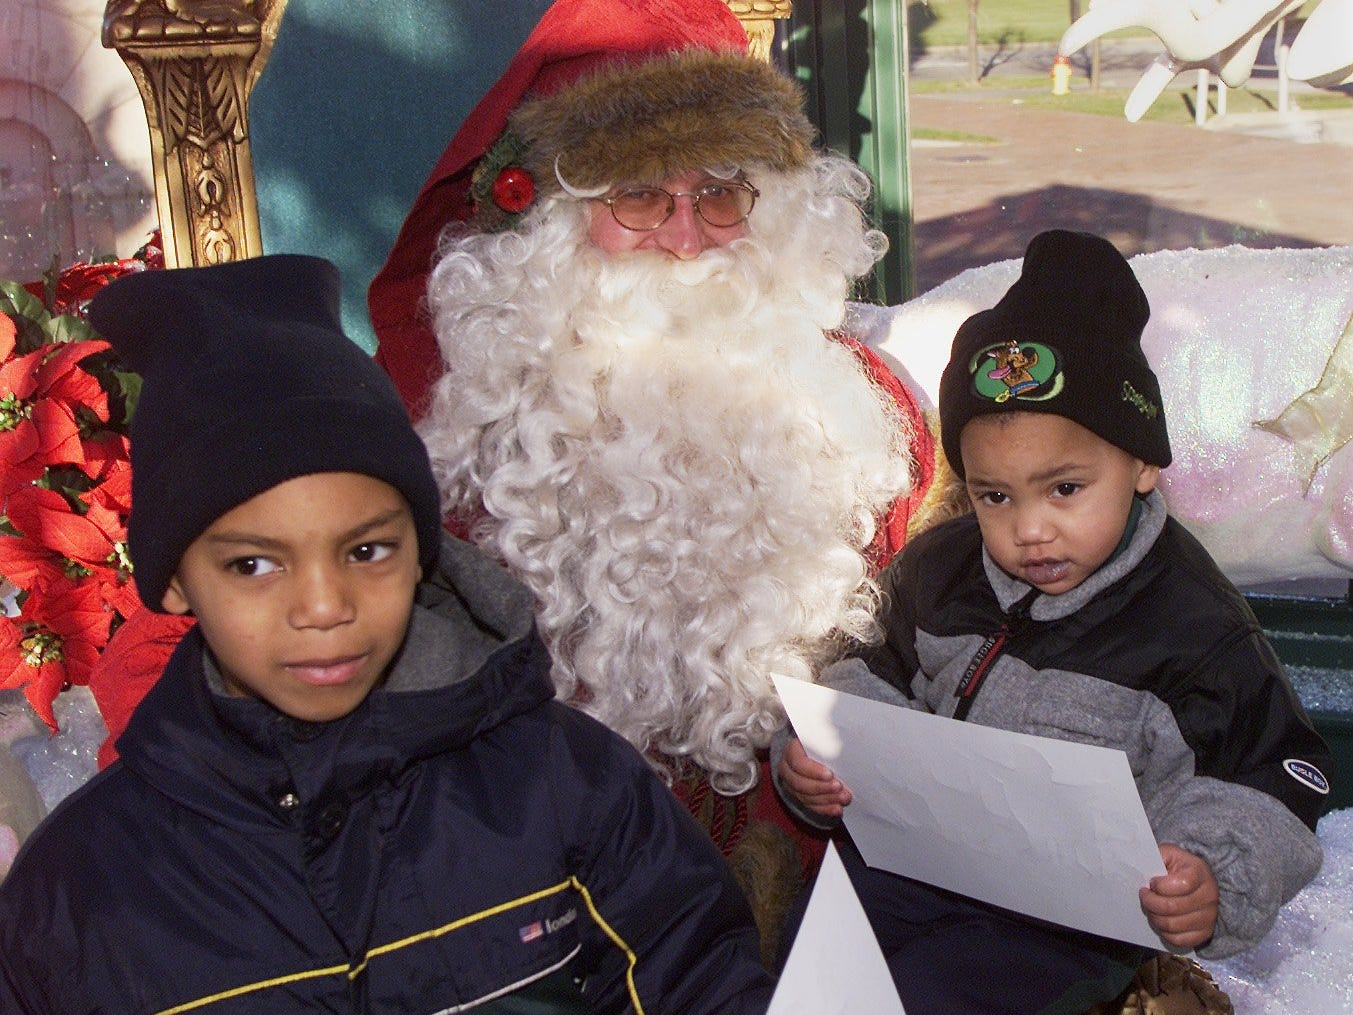 In 2000, Daron Fulmer, 6, left, and his brother Darius, 2, both of Elmira, visited Santa Claus in downtown Corning during the Crystal City Christmas festivities.